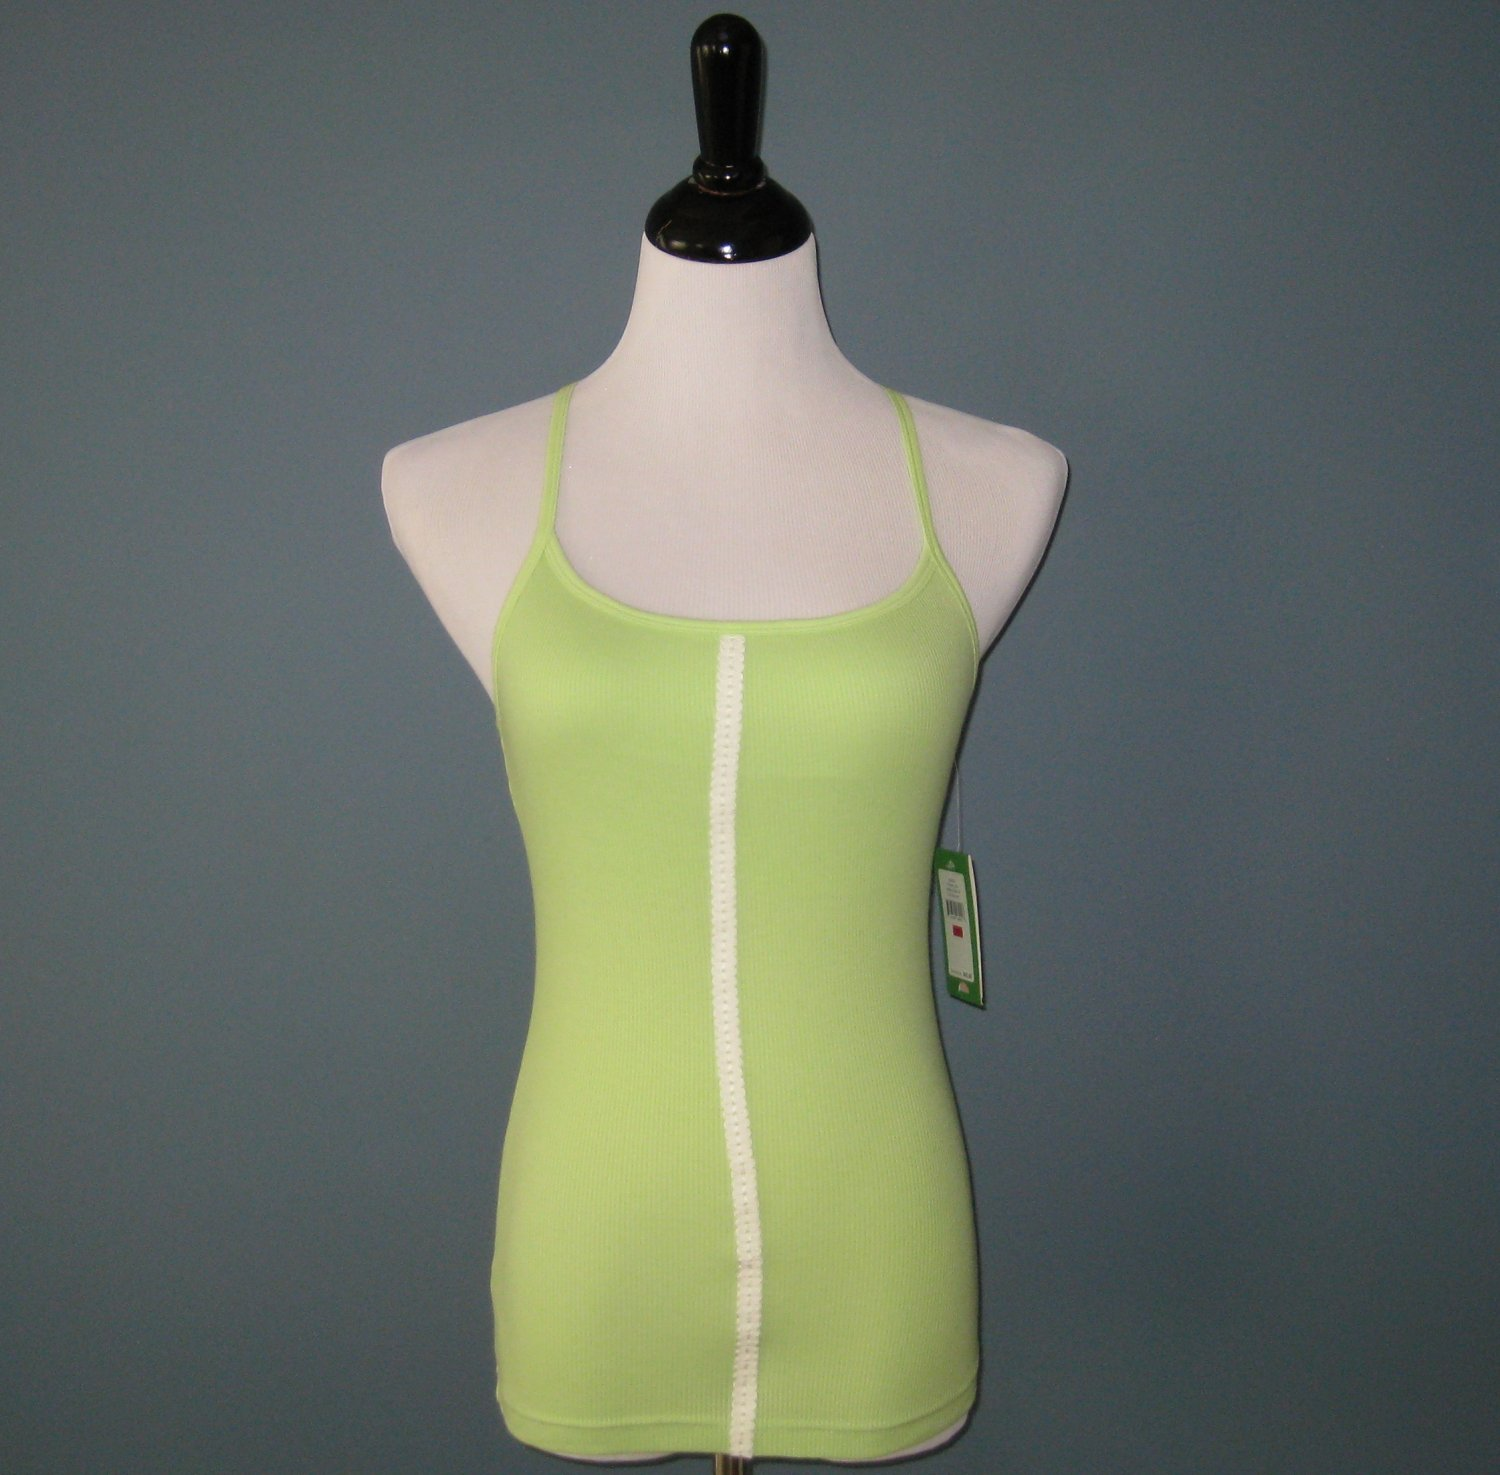 NWT Lilly Pulitzer Green Cotton Modal Rib Knit Racerback Tank - XS